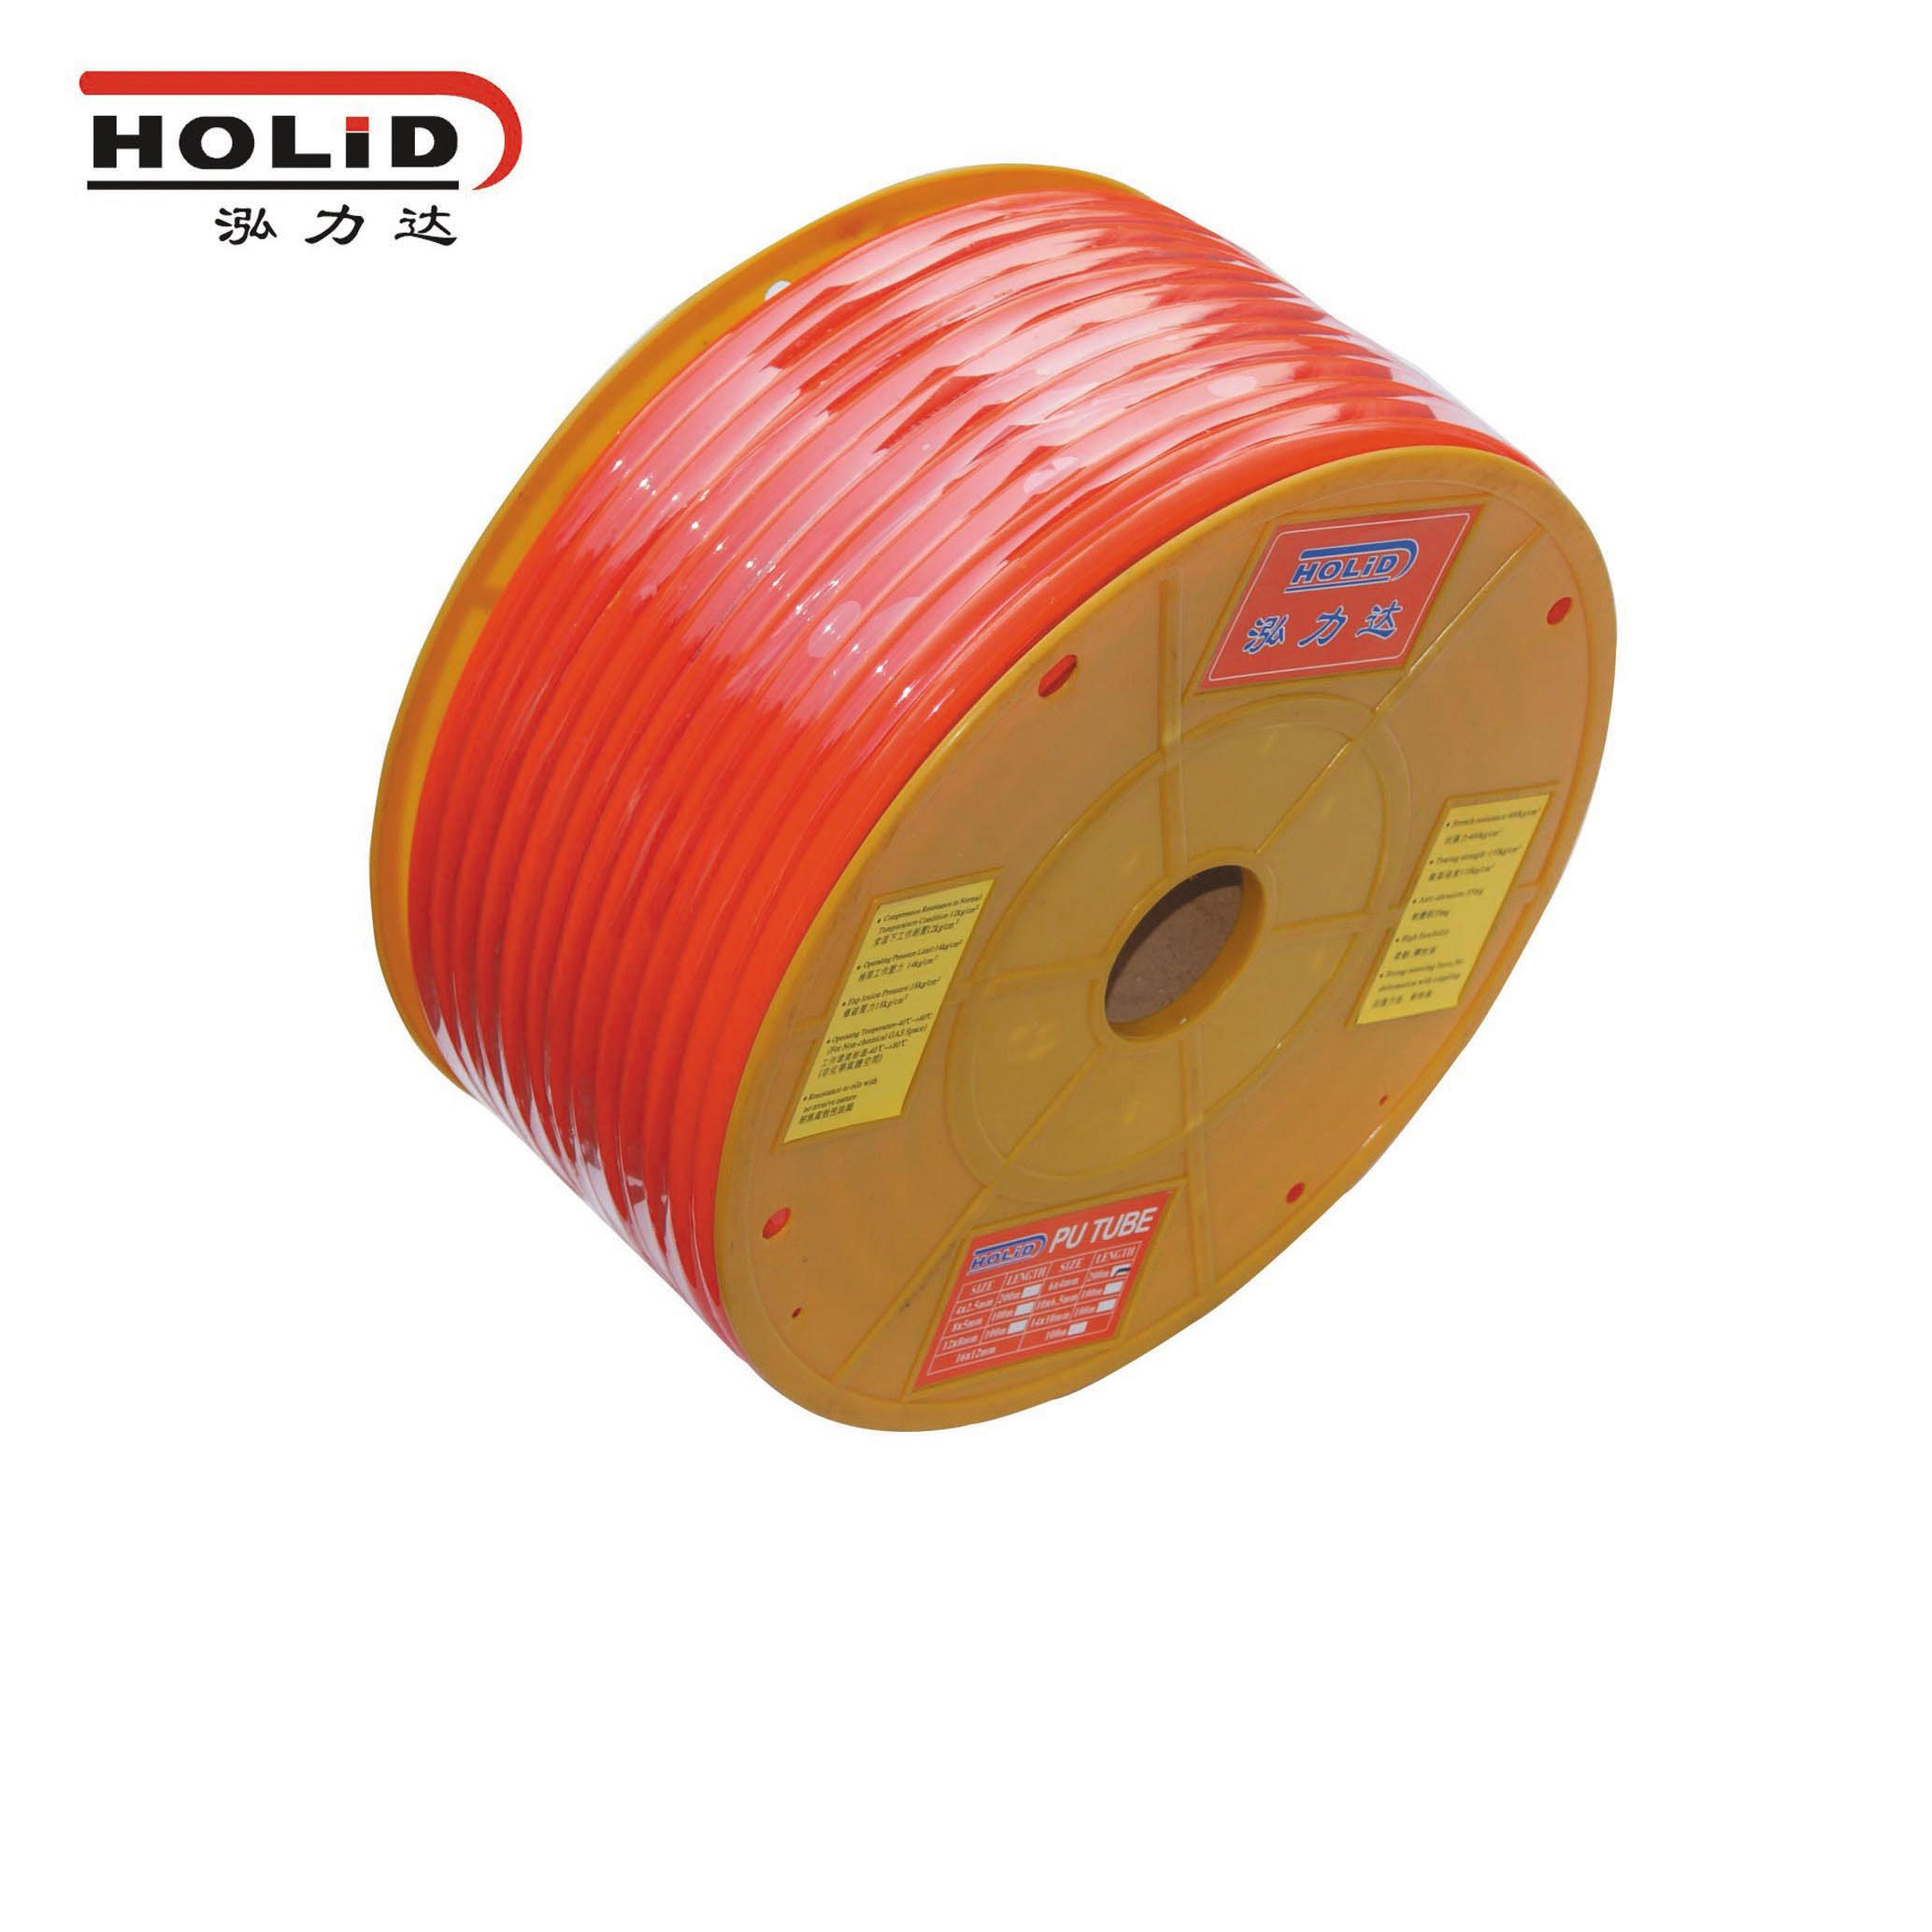 The Light Weight Polyurethane Hose Ideal For Applications